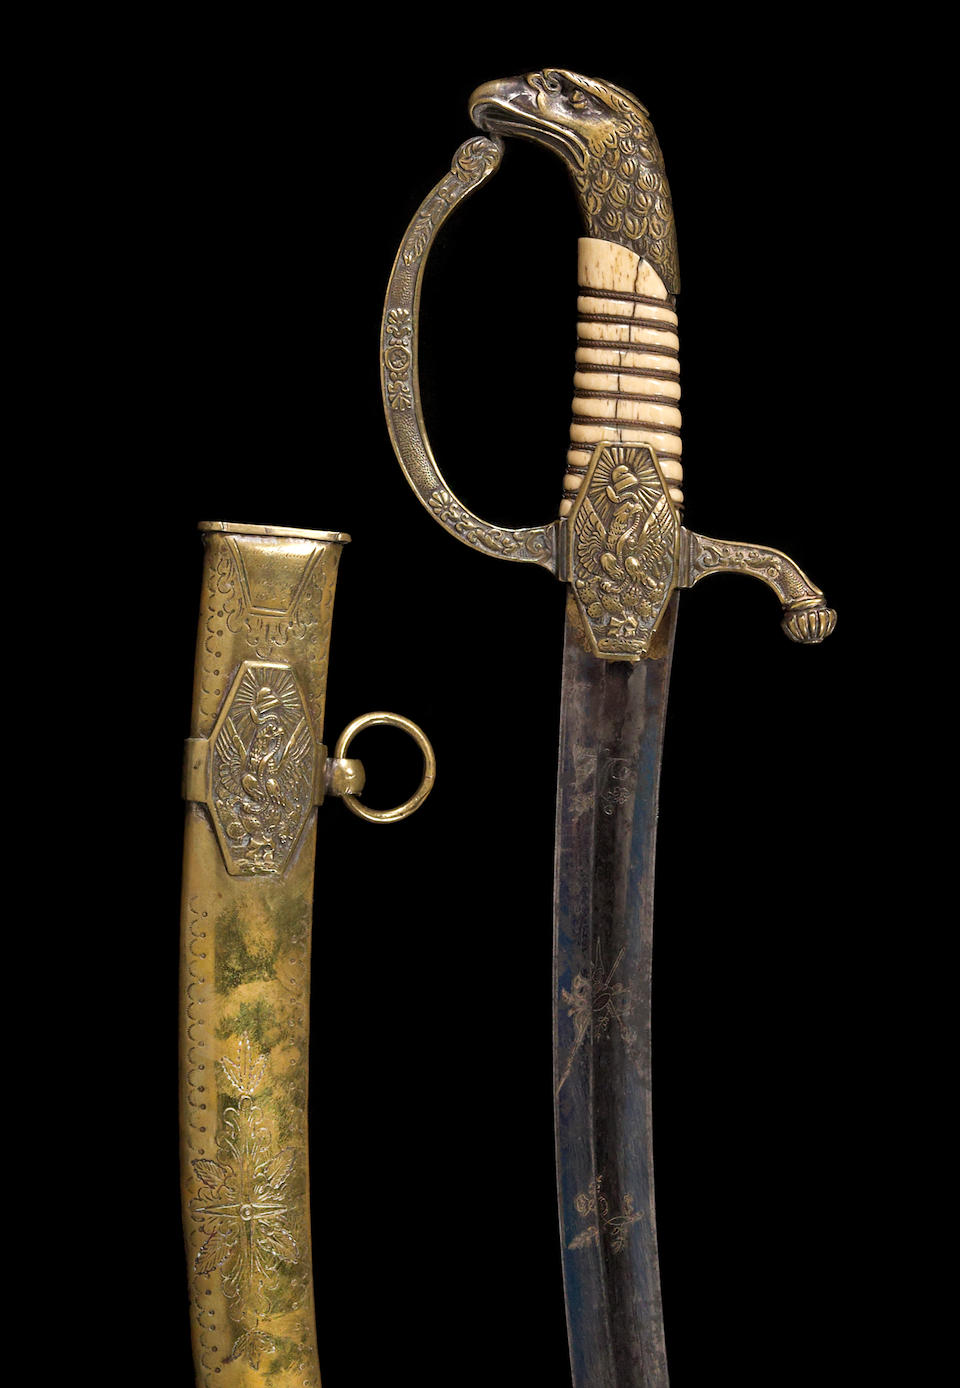 The Renwick historic Mexican officer's saber attributed to Antonio Lopez de Santa Anna